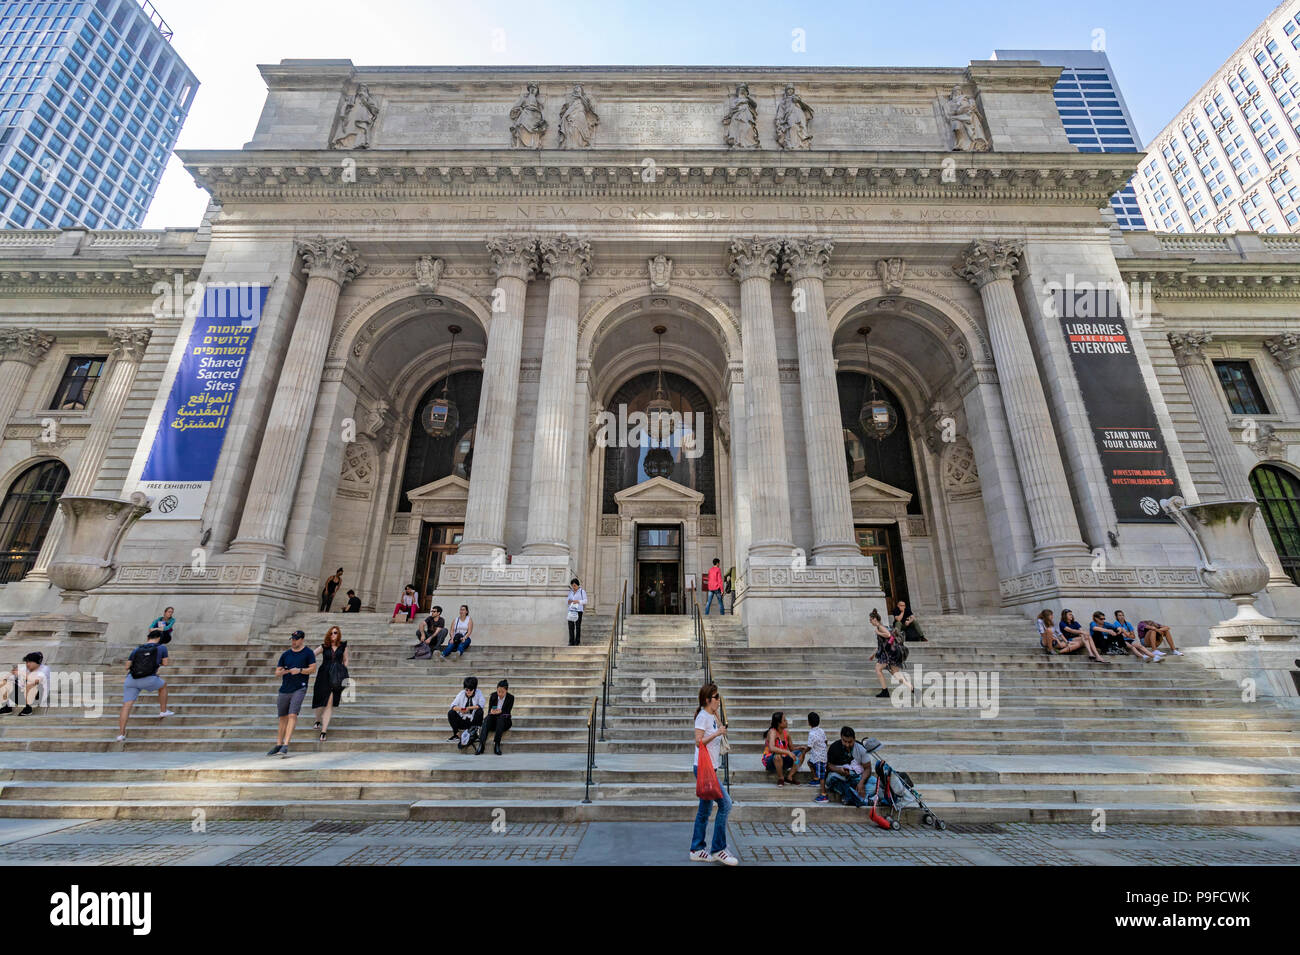 Exterior View of the New York Public Library on 42nd Street in Manhattan, New York City and people sitting on the steps. - Stock Image